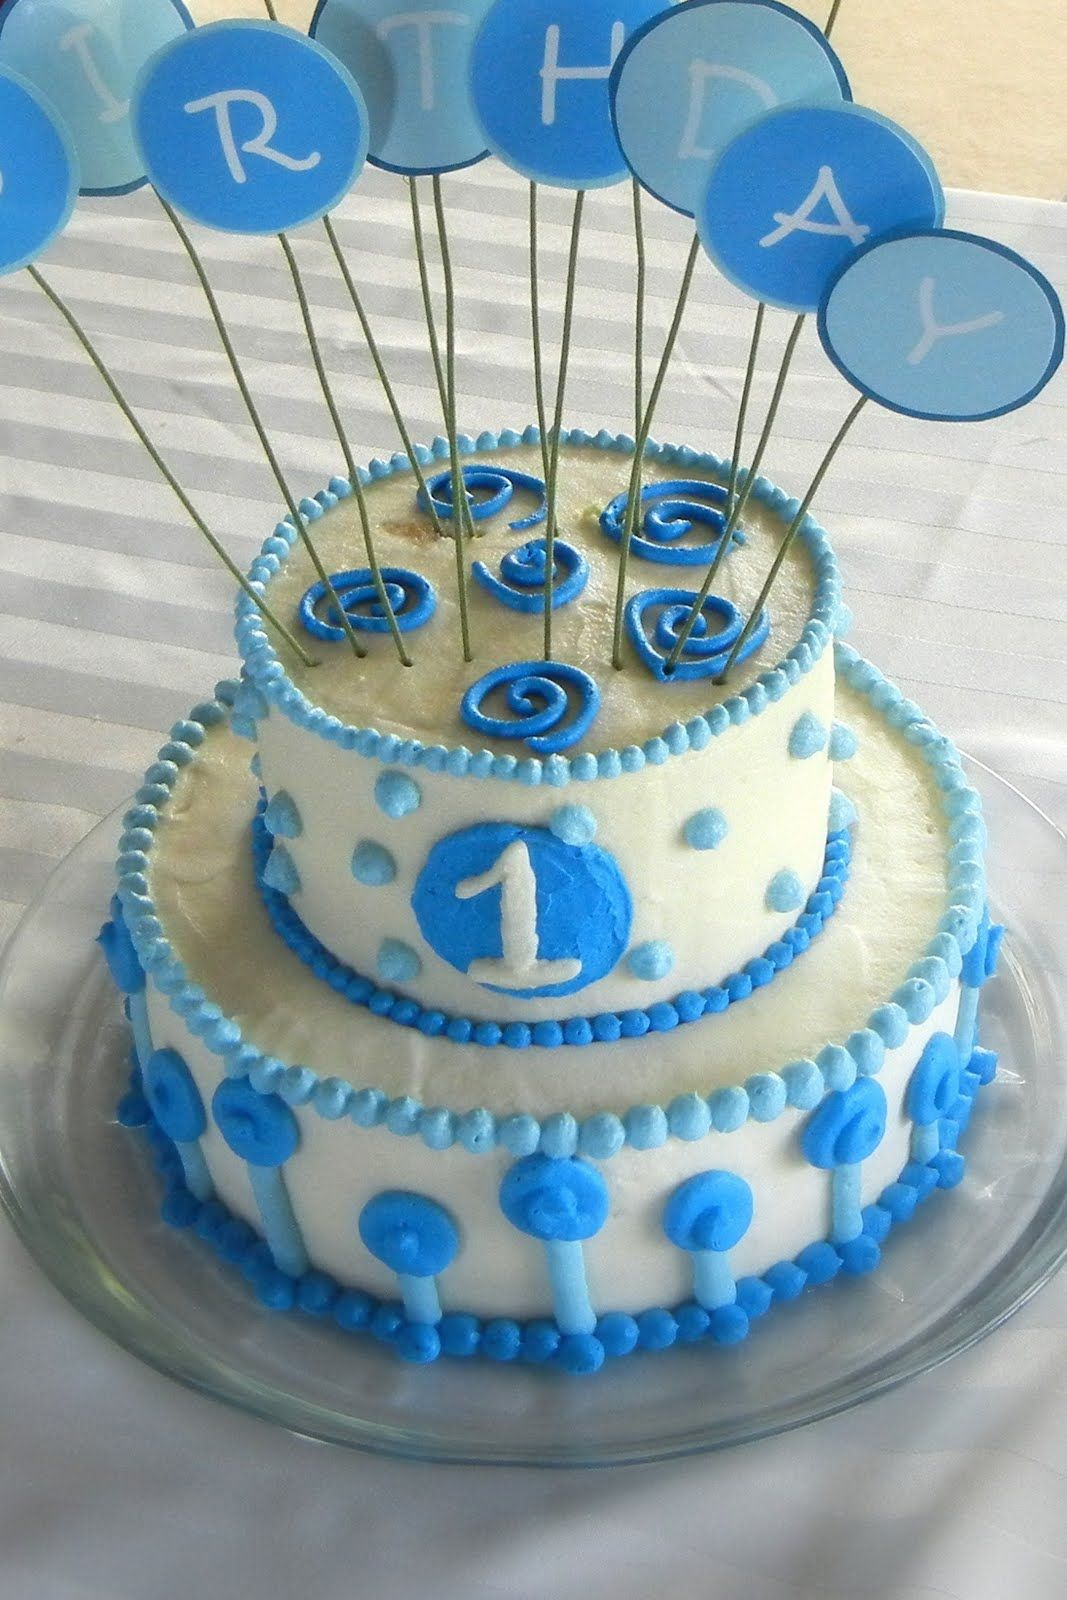 Baby boy birthday cake ideas party cakes baby boy 1st for 1st birthday cake decoration